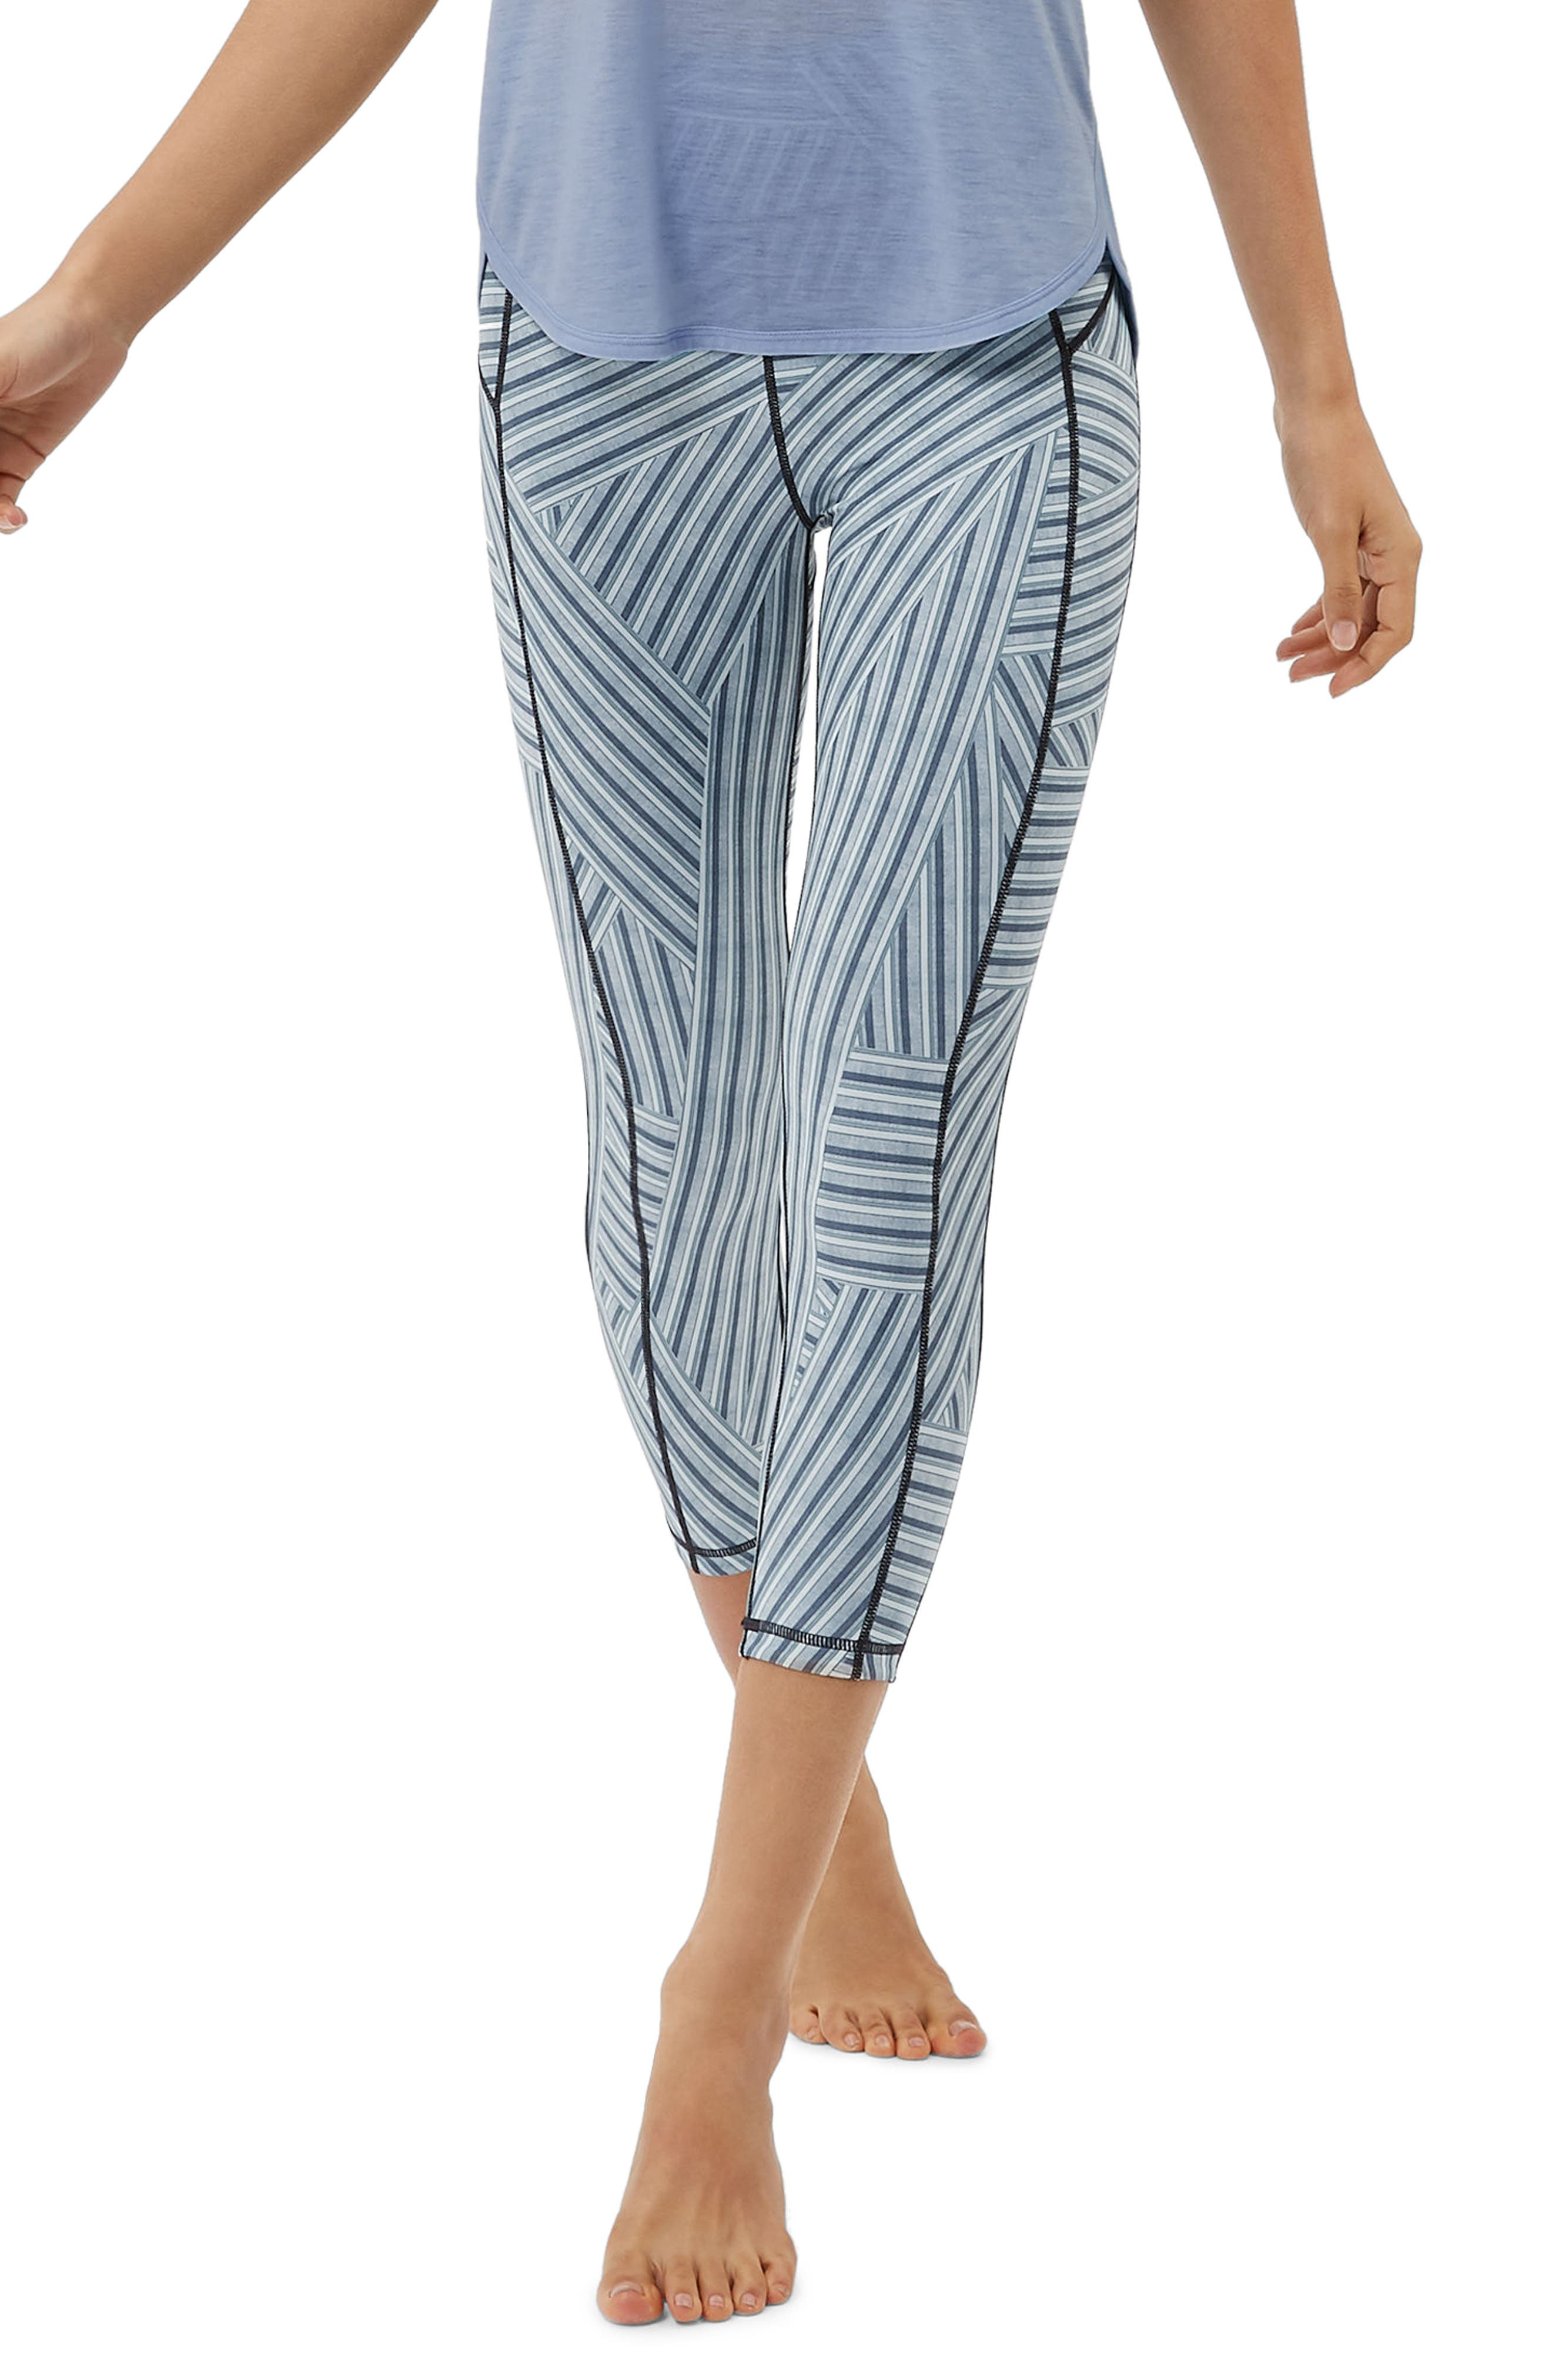 Double Duty Reversible Crop Leggings by Sweaty Betty